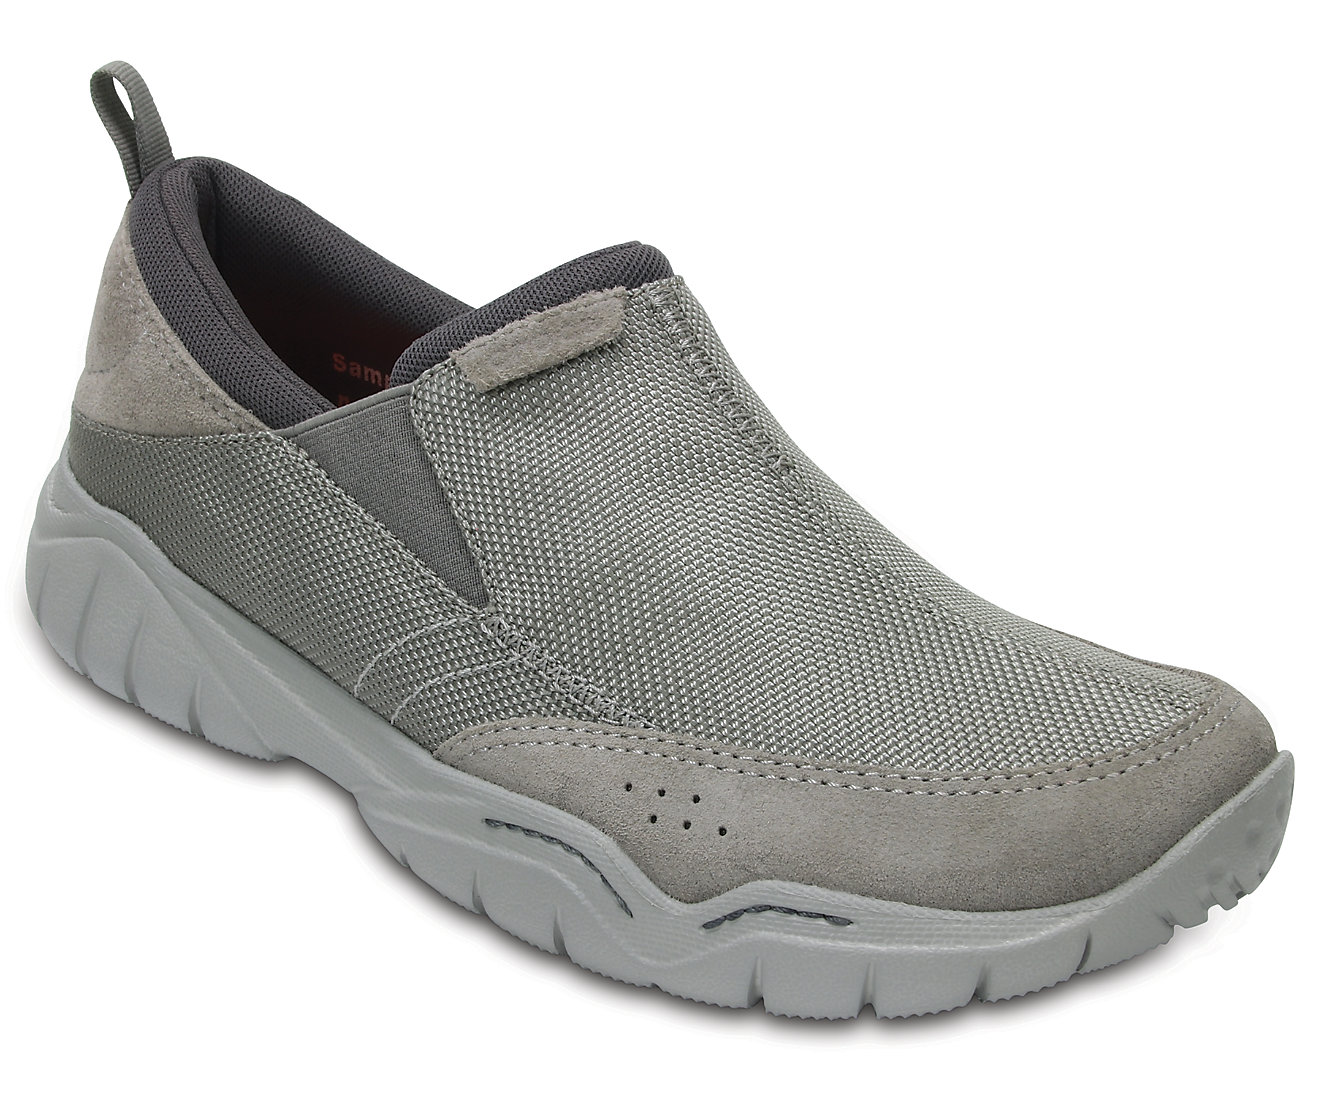 Men's Swiftwater Edge Moc